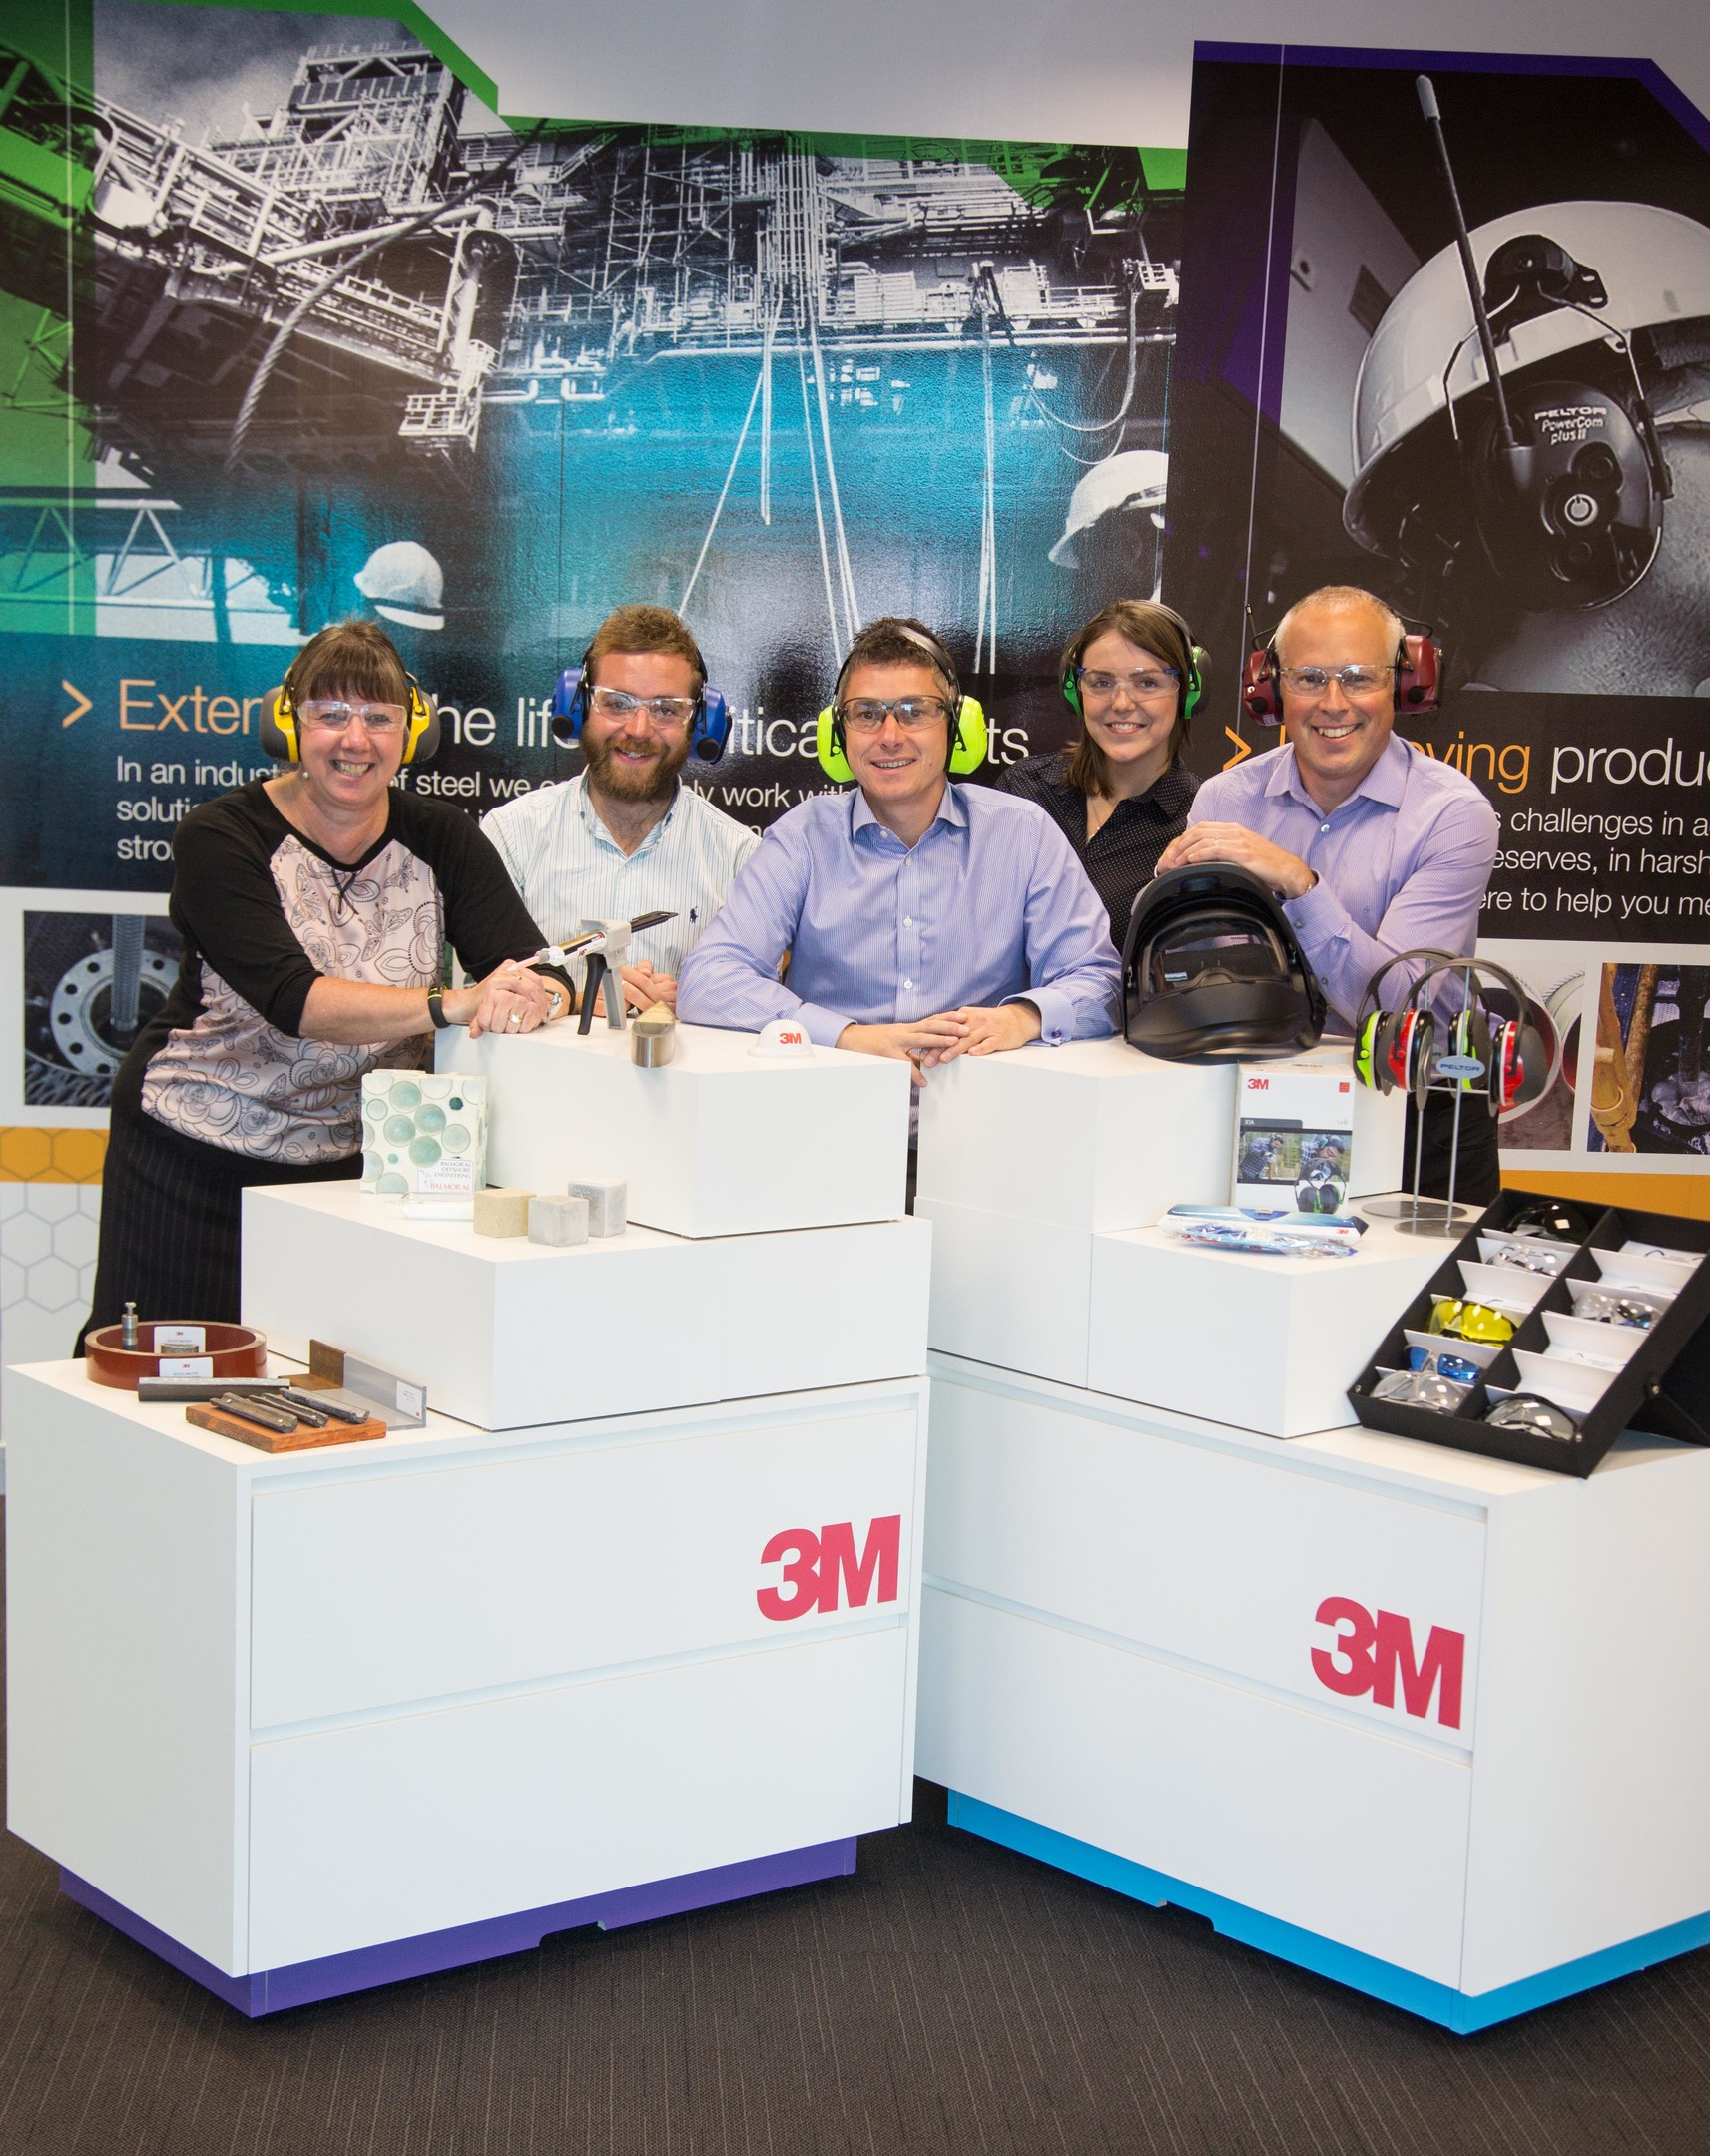 The 3M team at the CEC